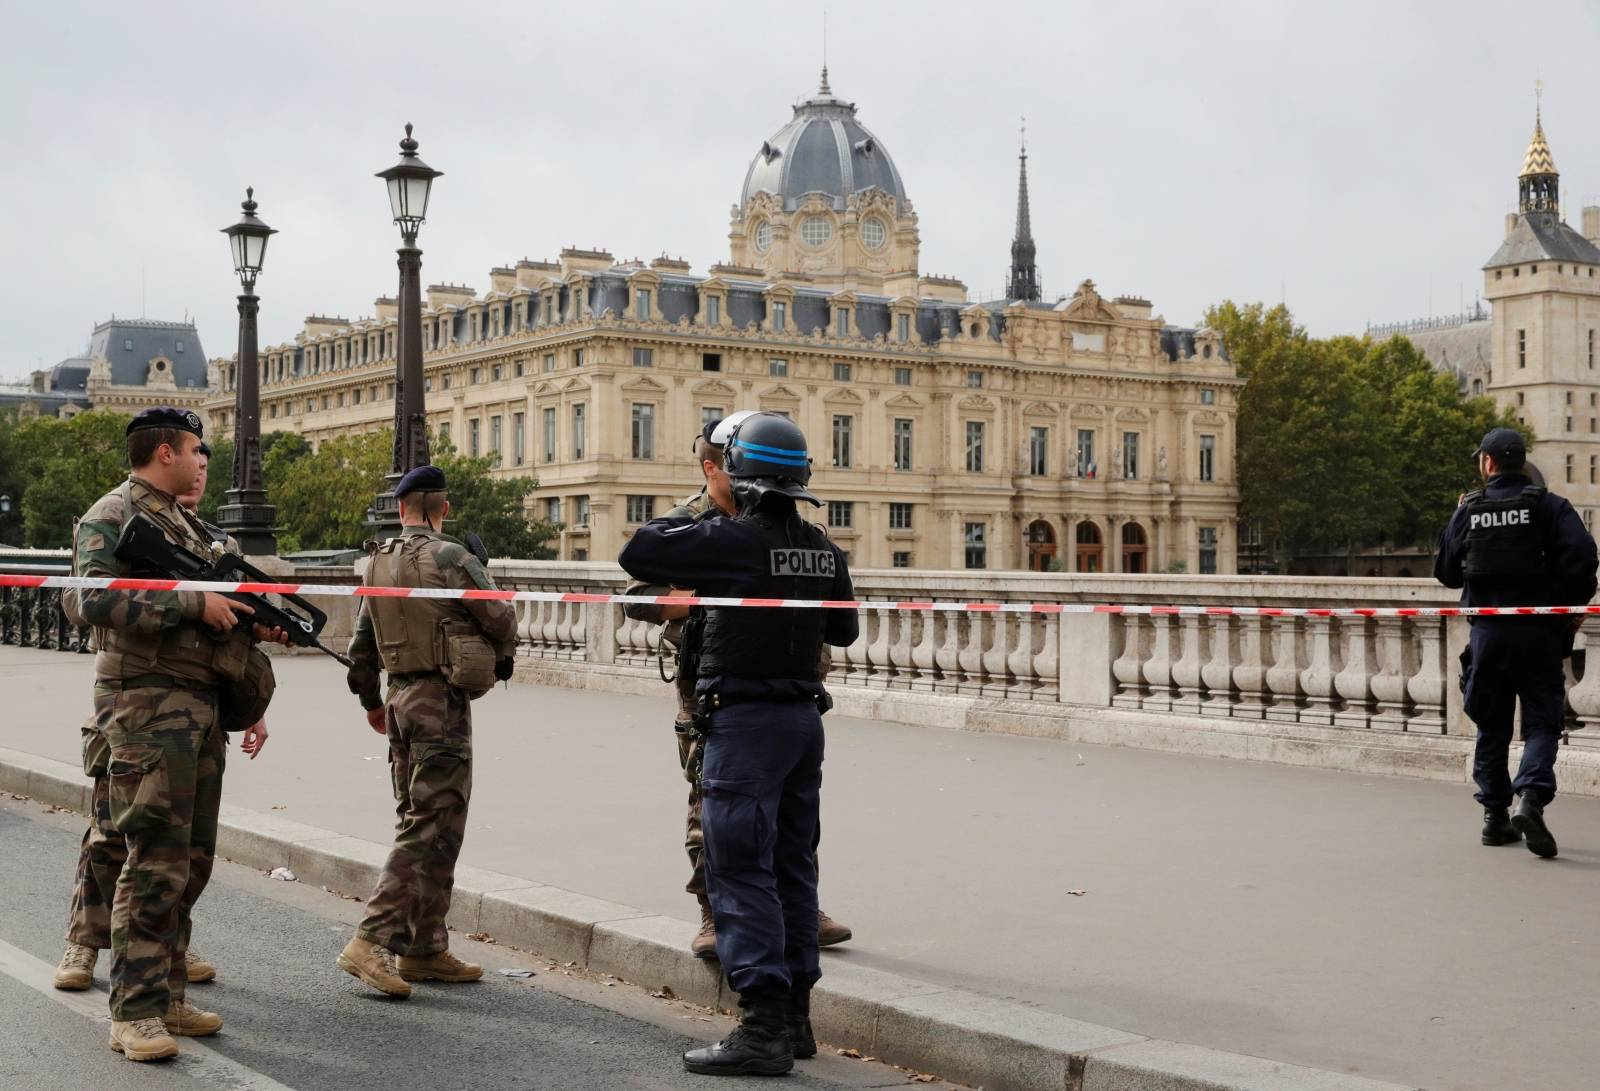 French police secure the area in front of the Paris Police headquarters in Paris